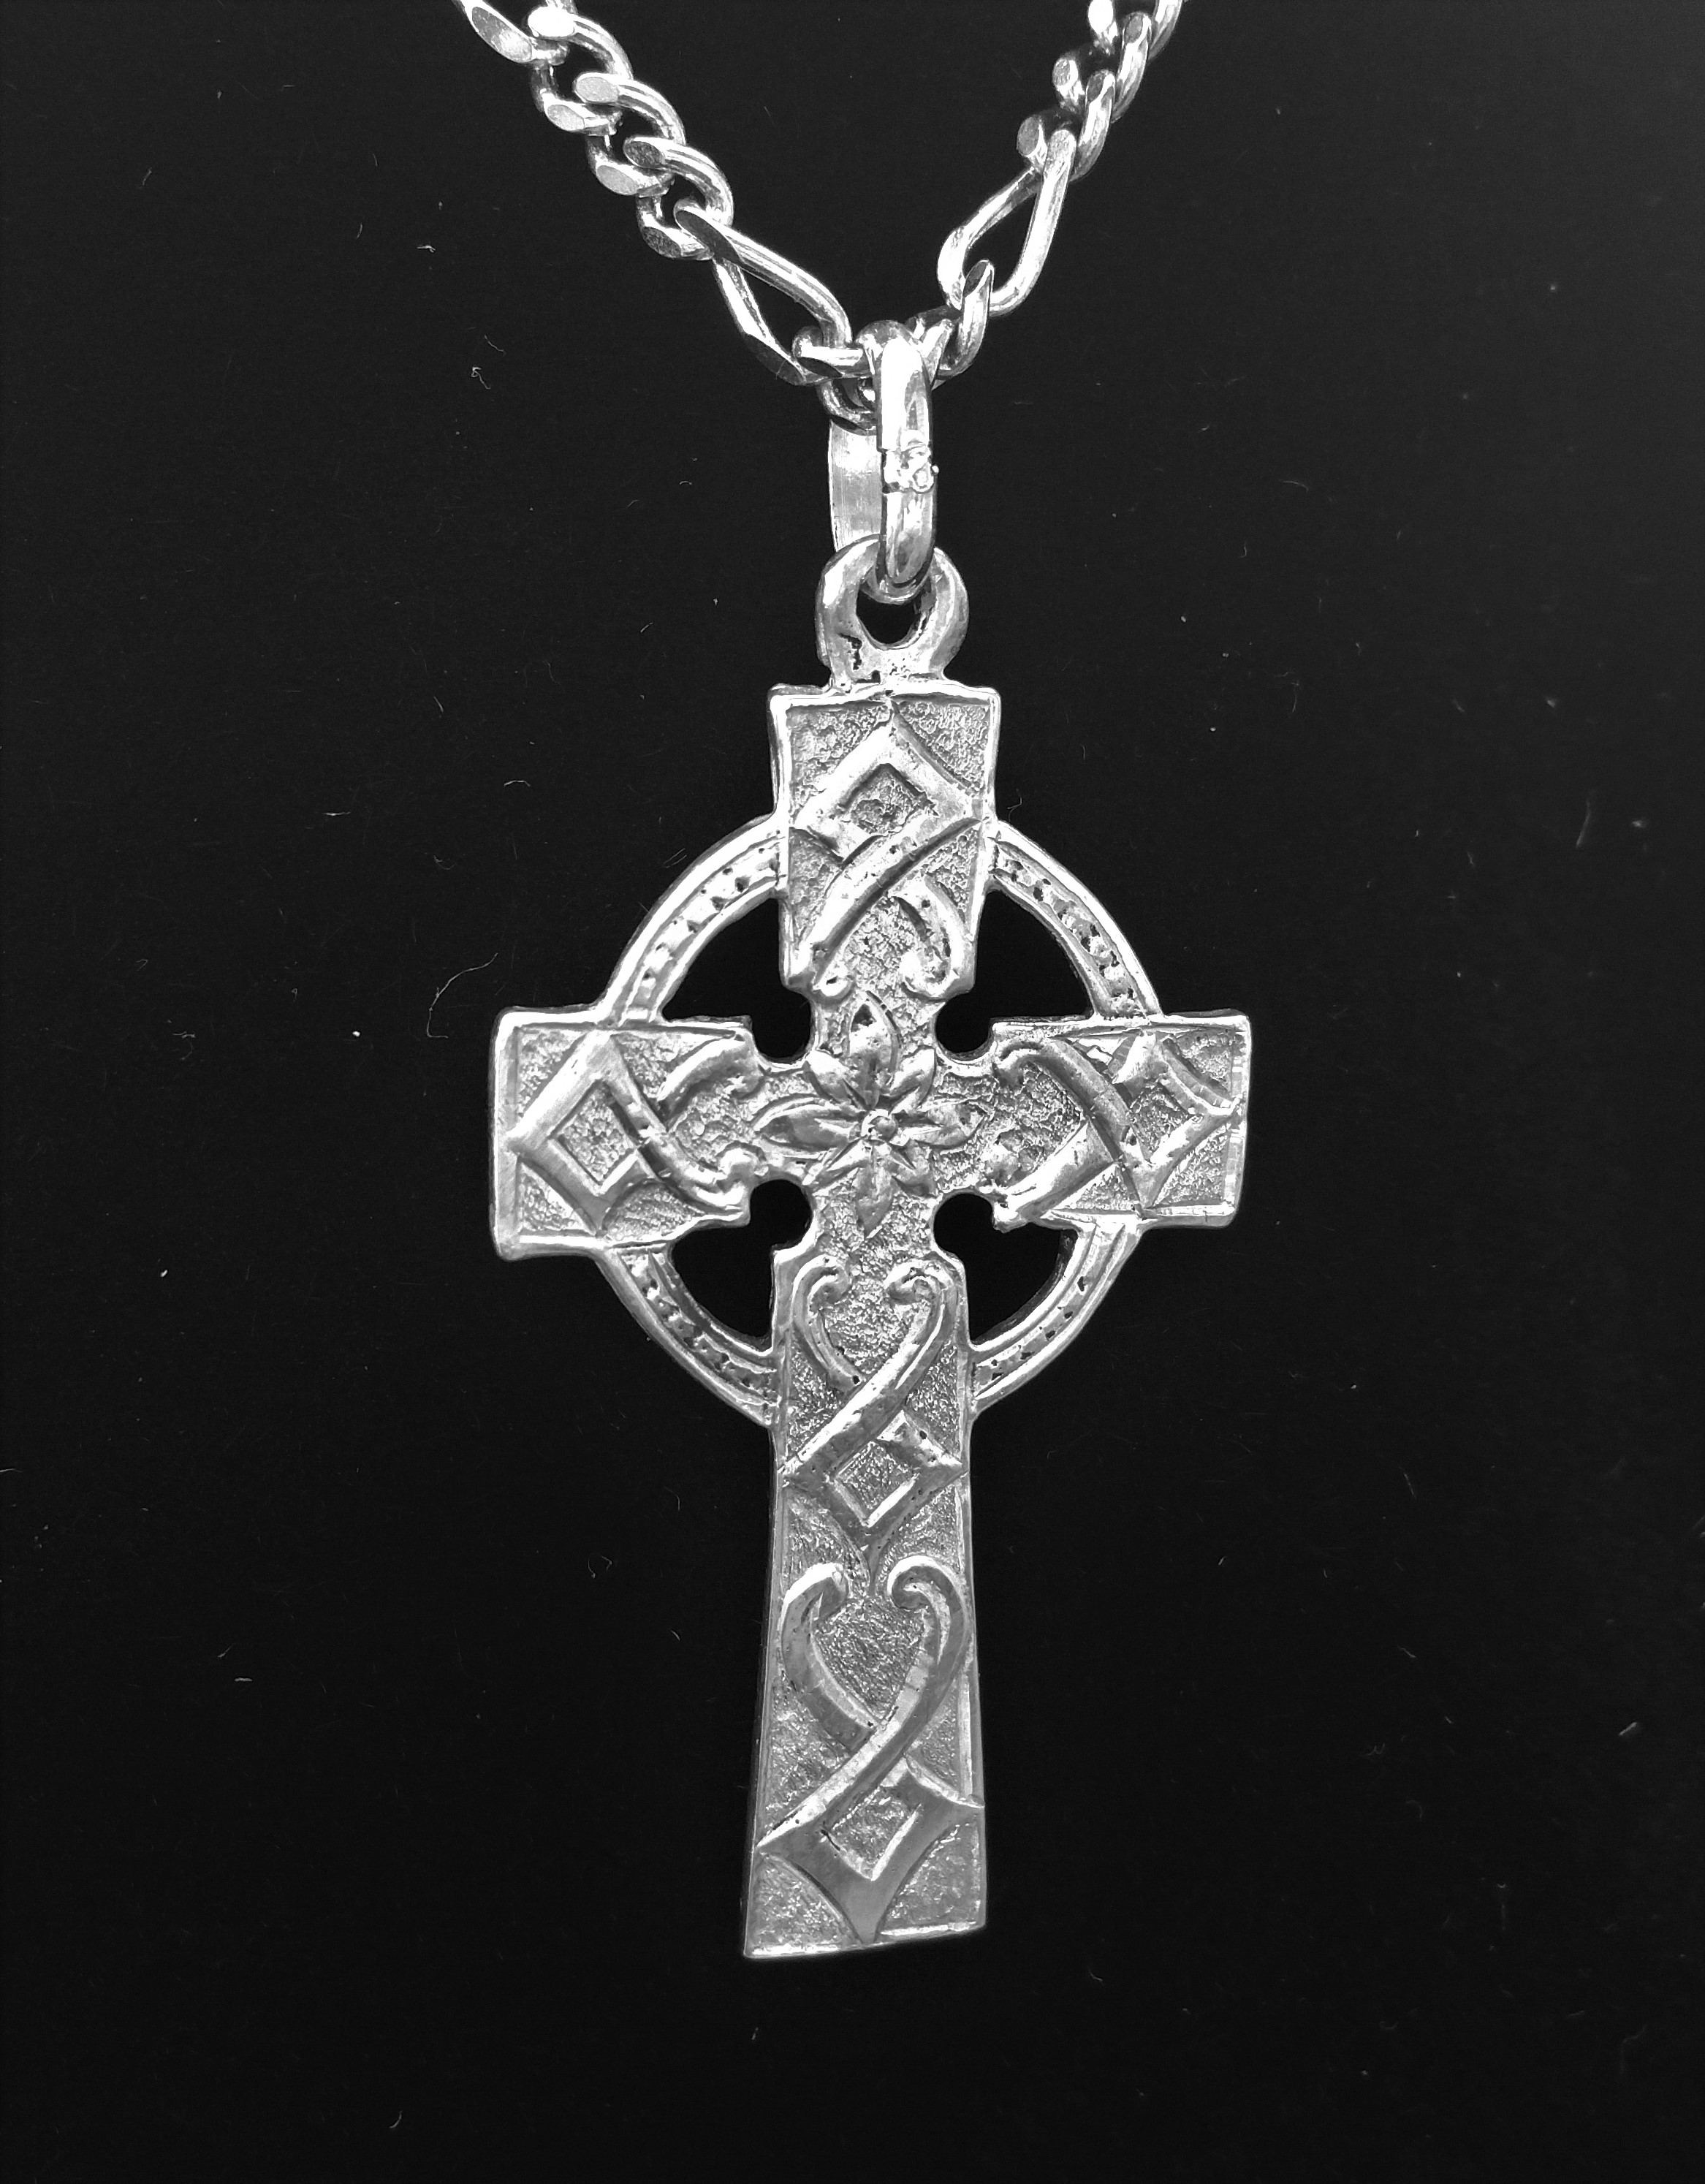 f pendant kolie eshop kosmimata collection pnd baptism mentagion